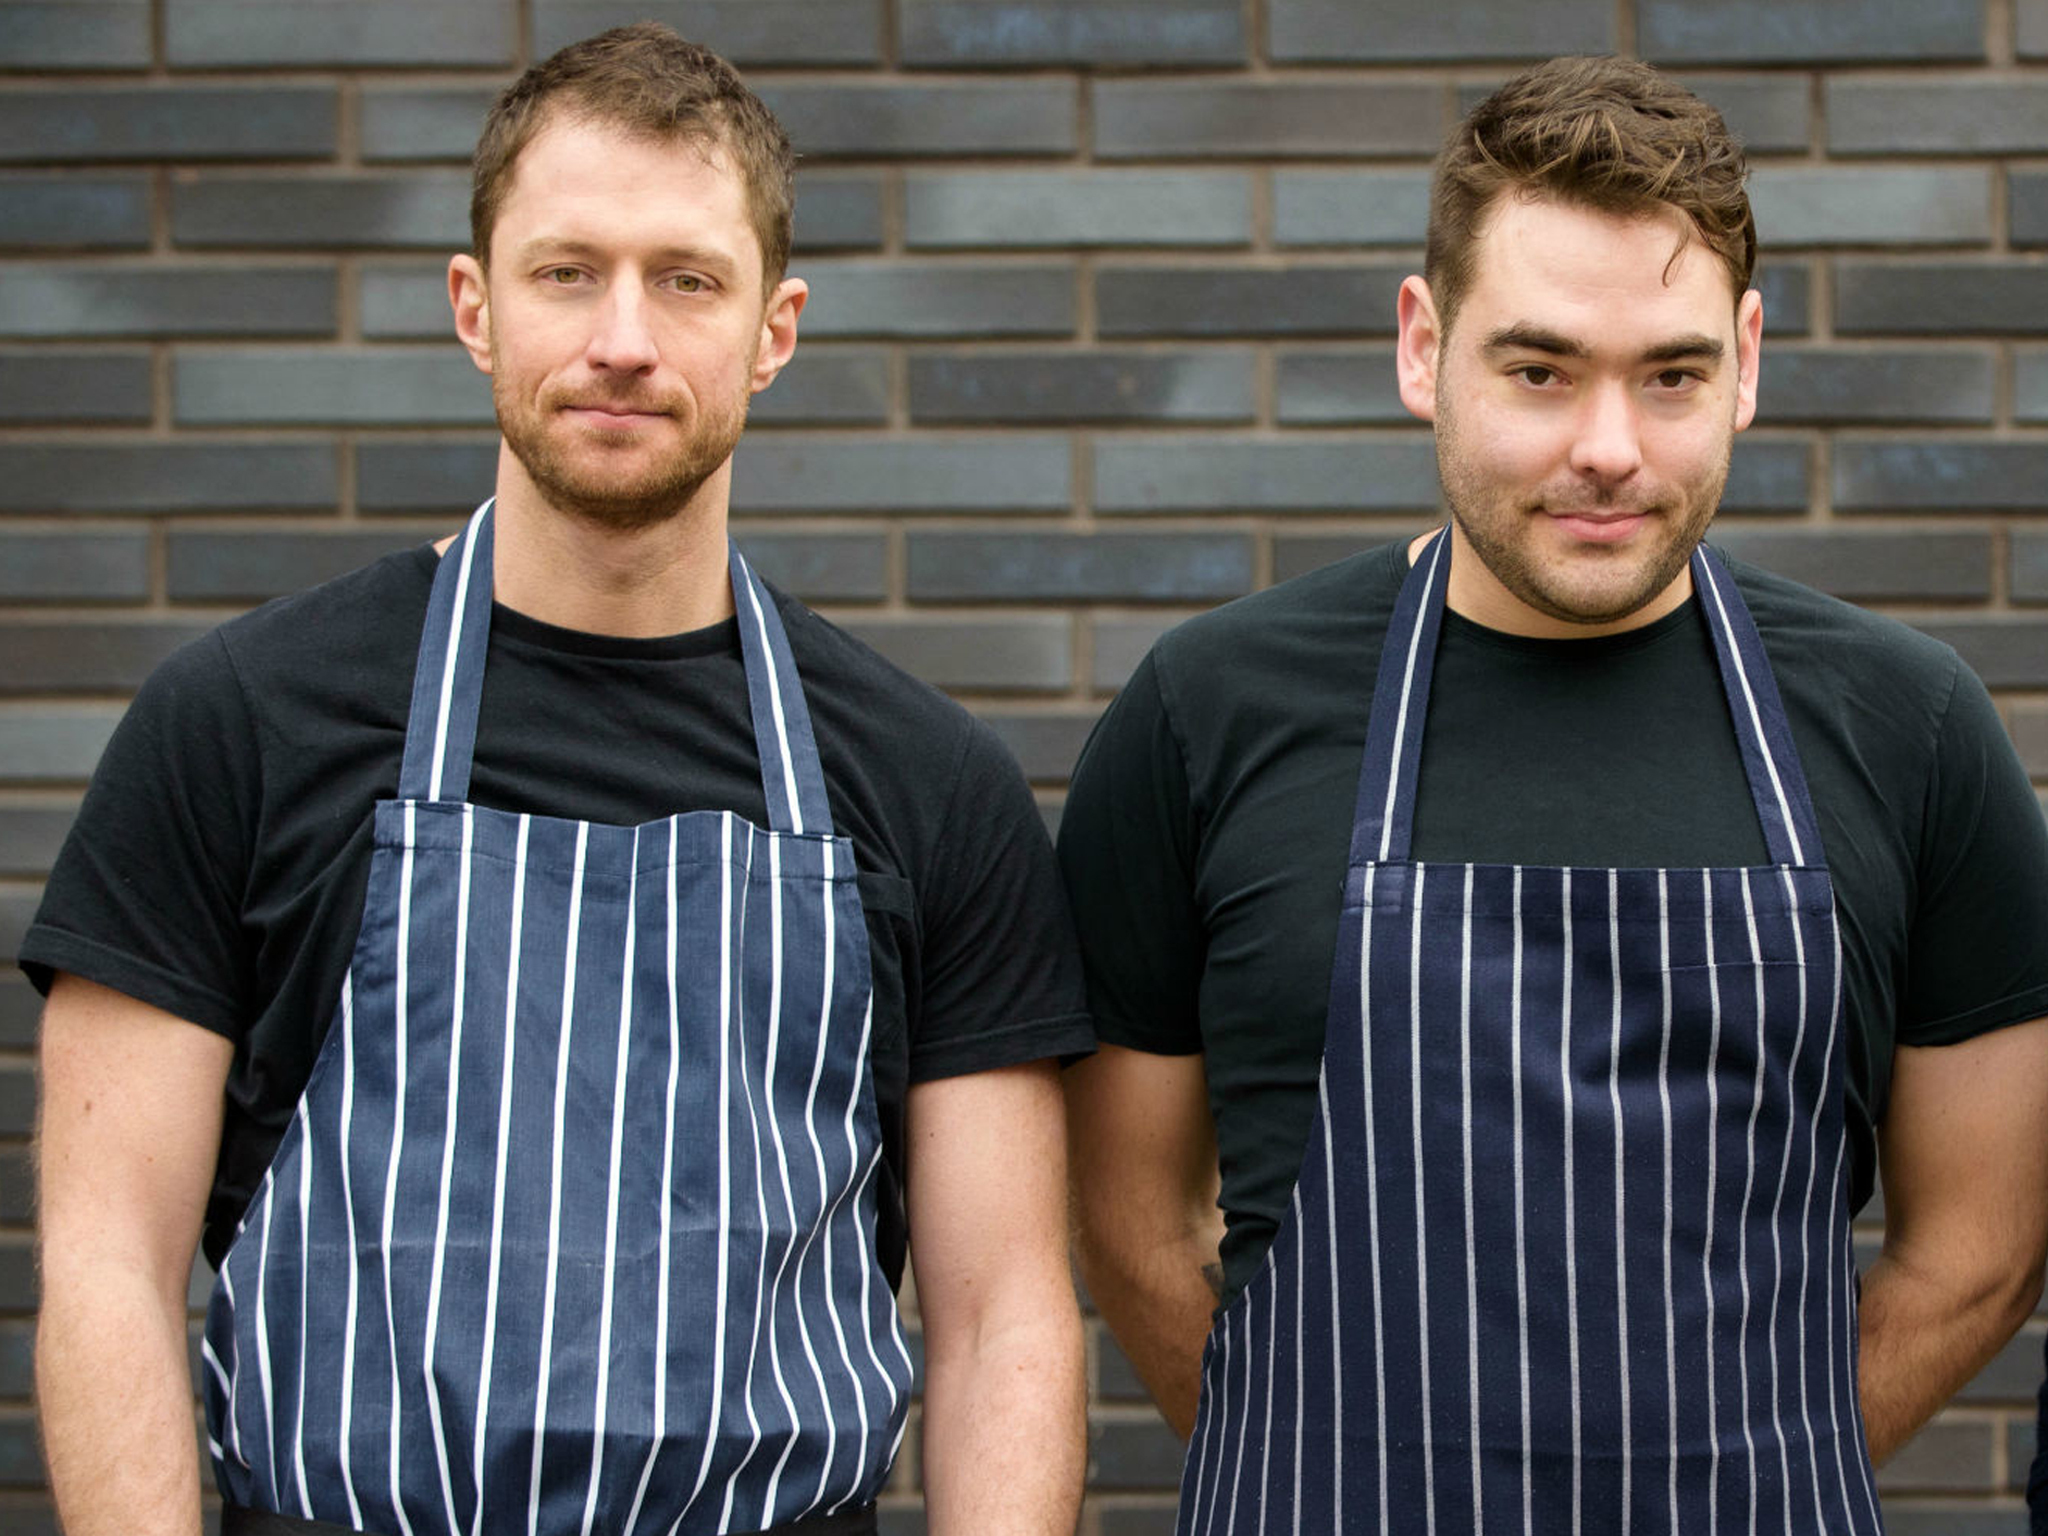 som saa, andy oliver and mark dobbie, london's hottest chefs